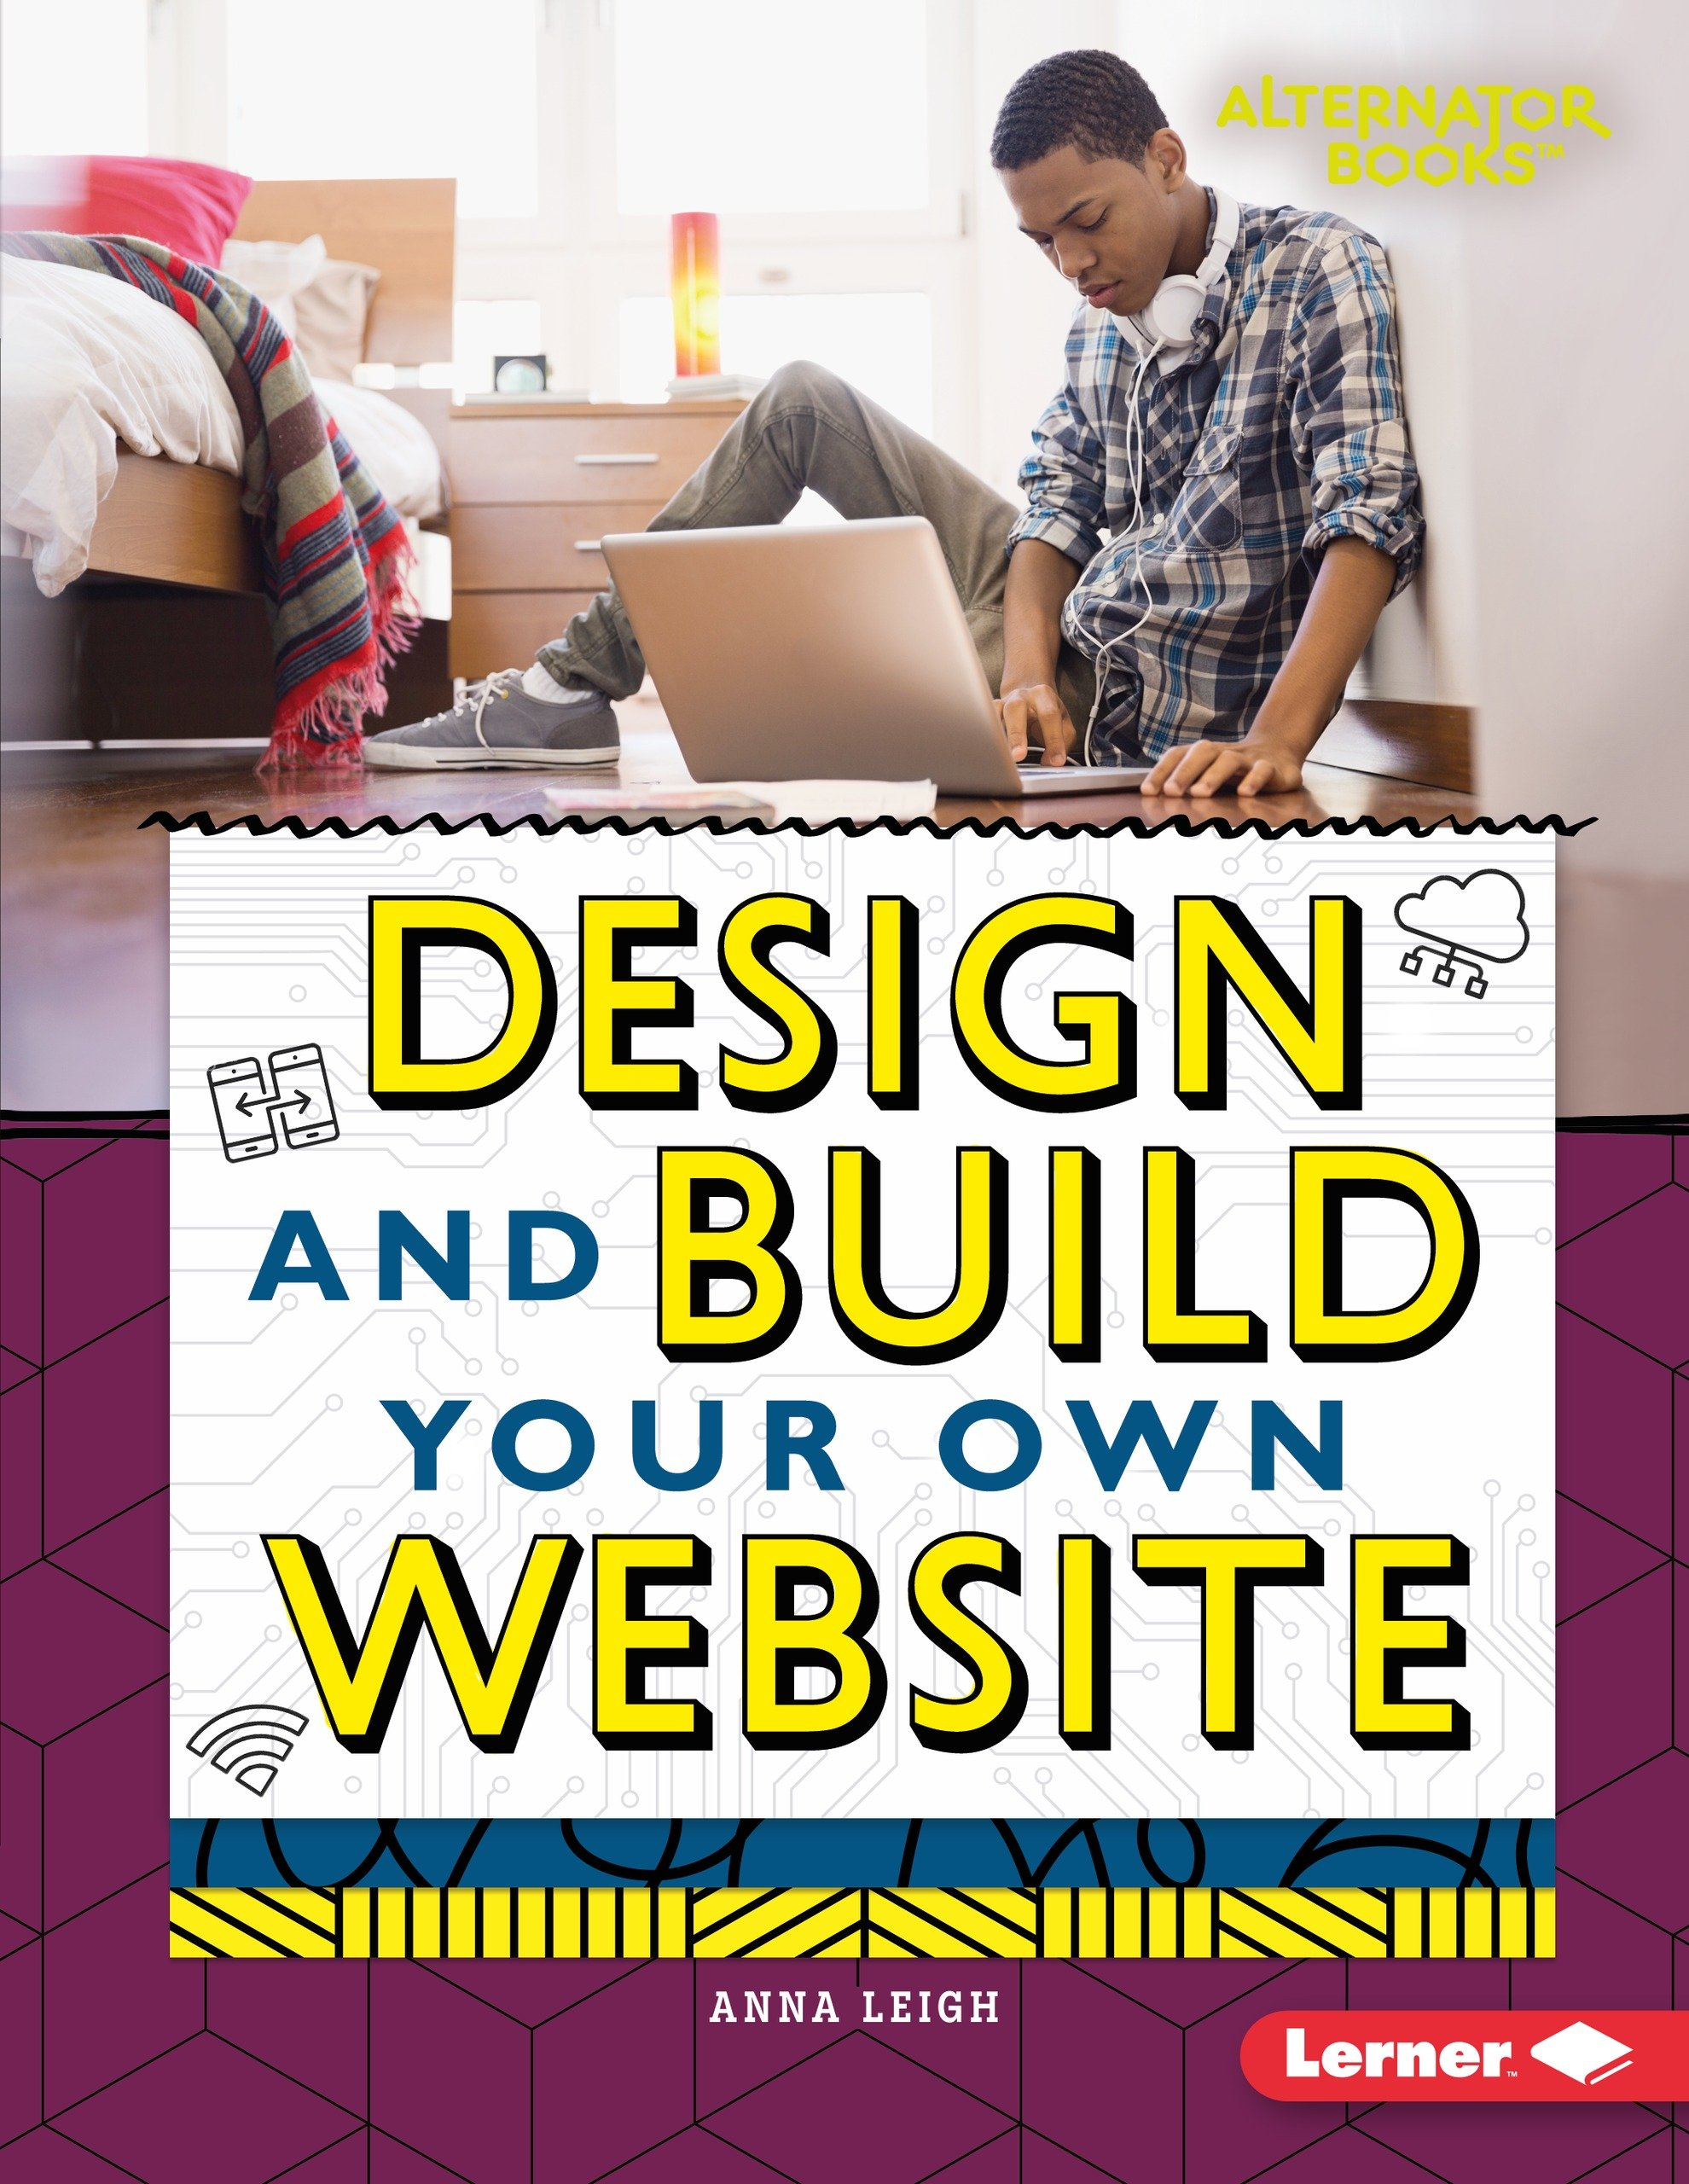 Design and Build Your Own Website (Digital Makers)